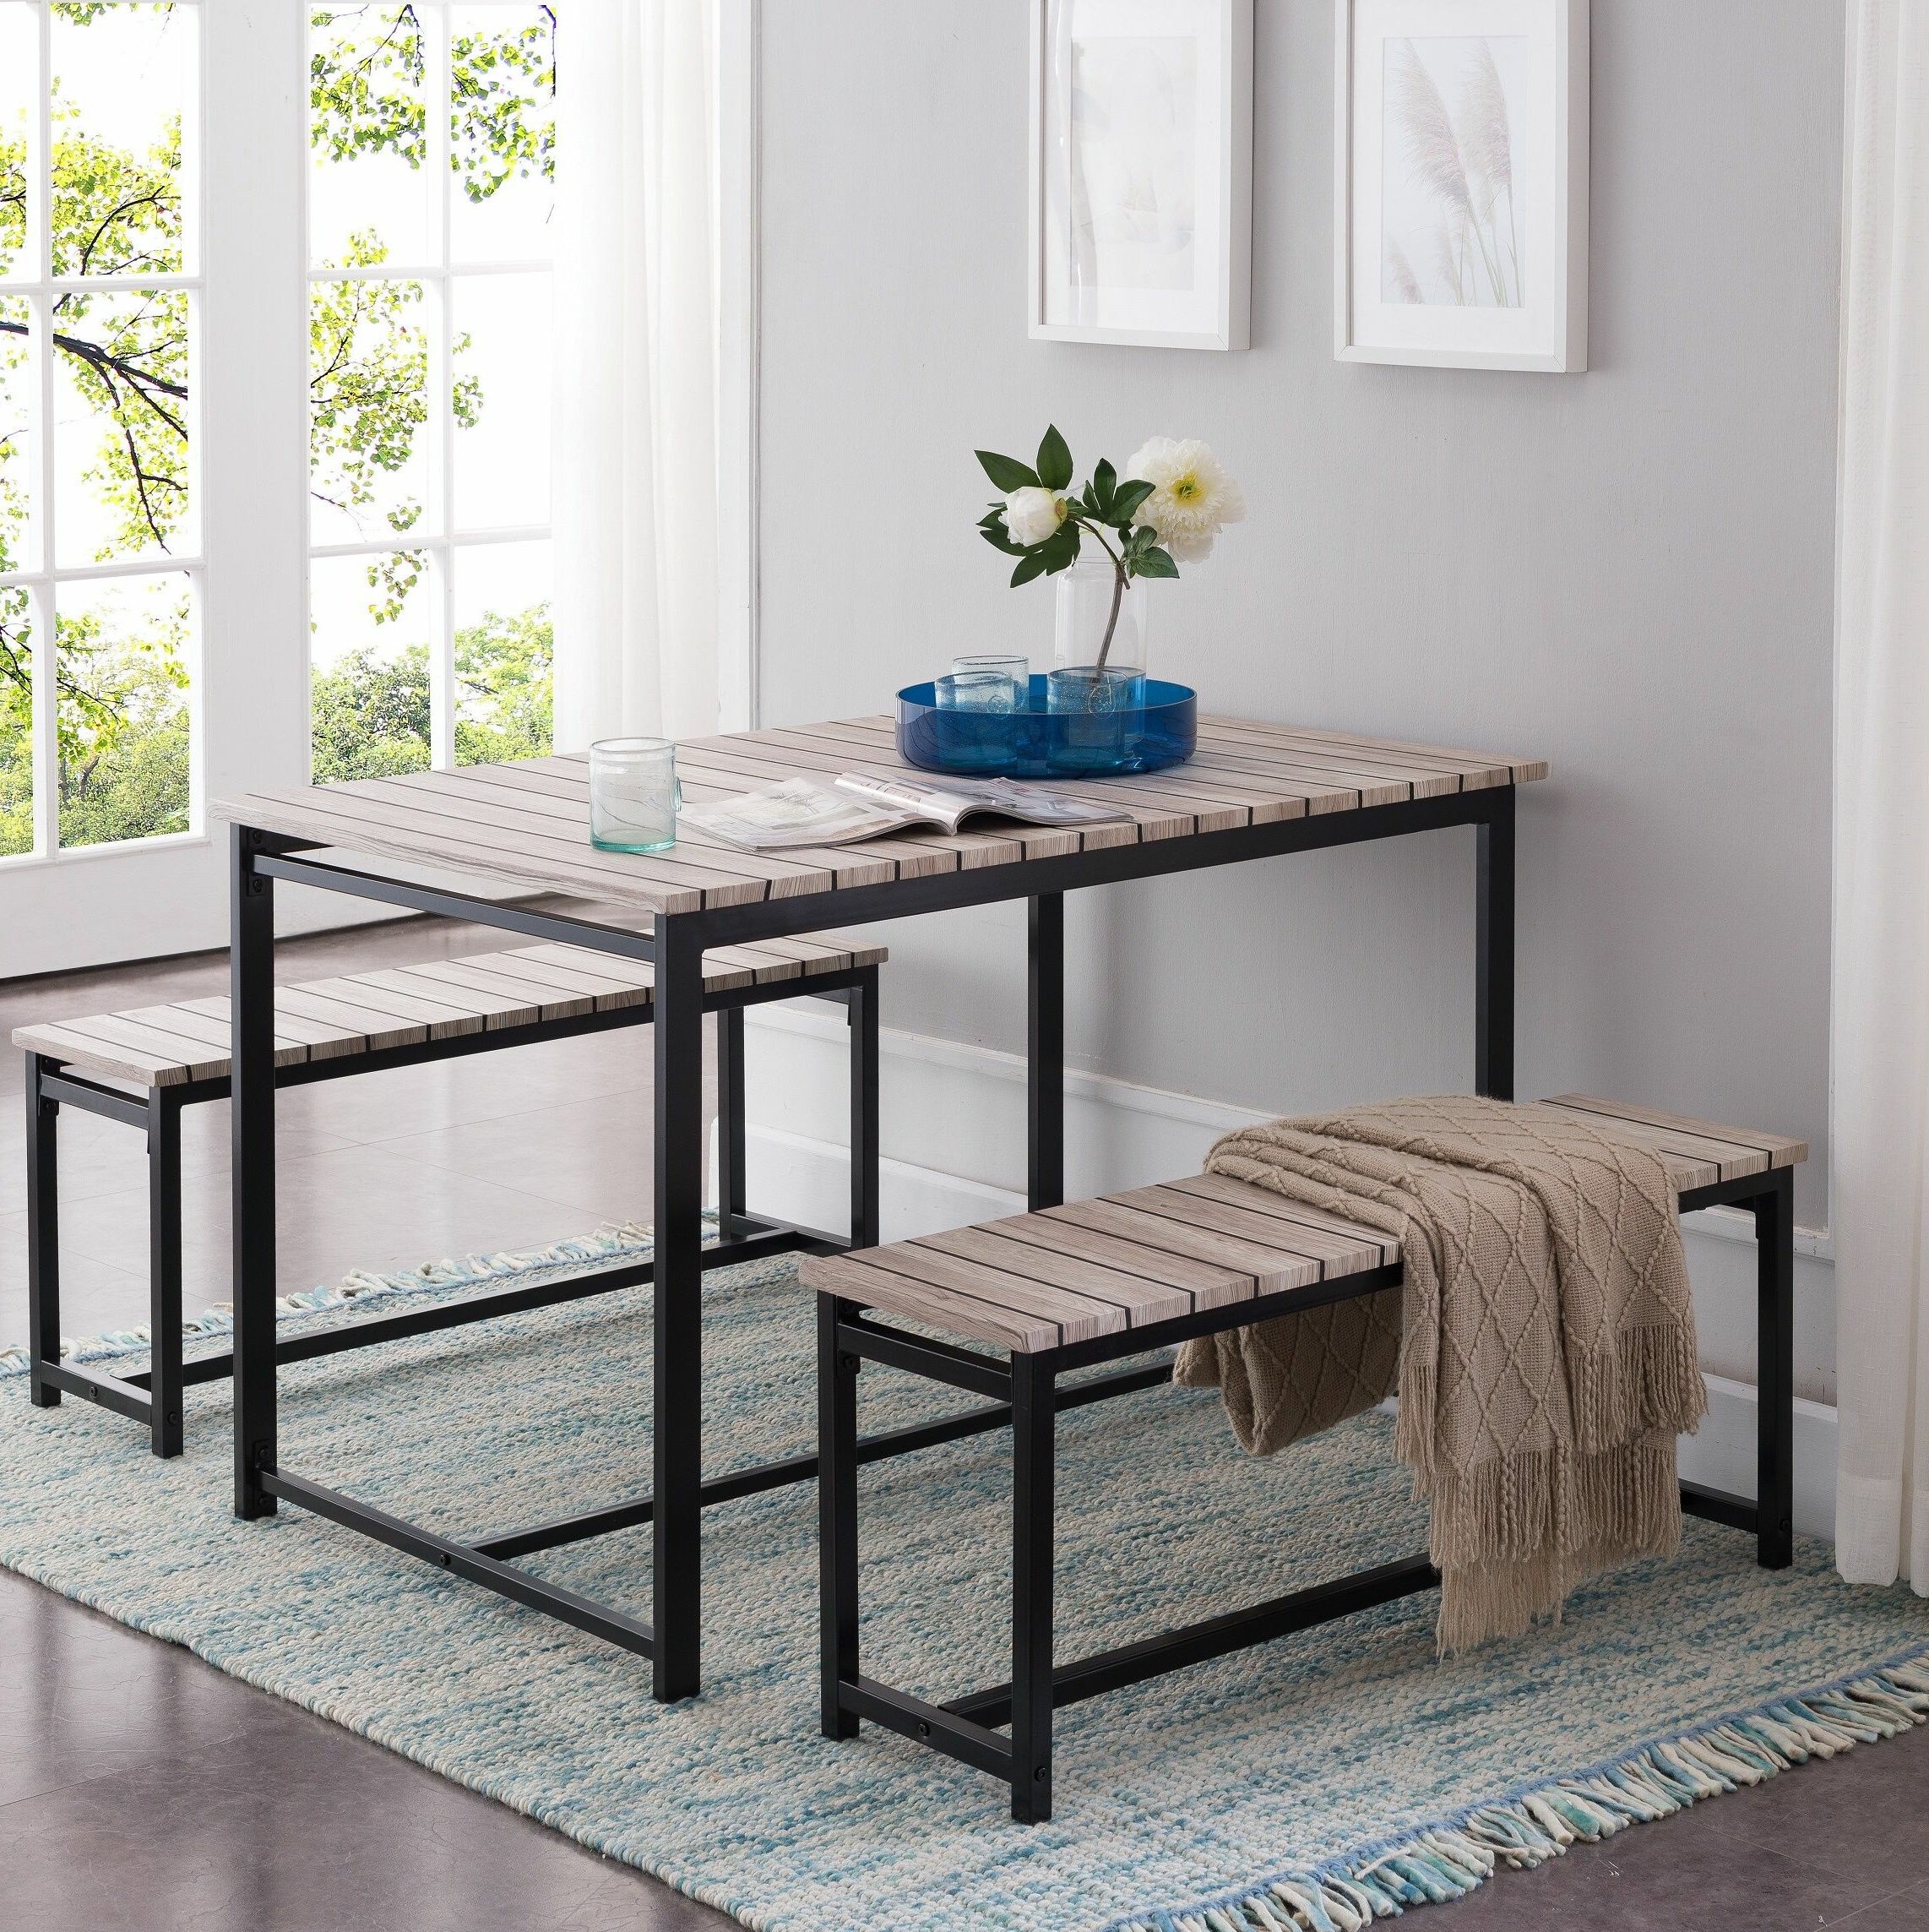 Wayfair Intended For Rossiter 3 Piece Dining Sets (View 21 of 25)